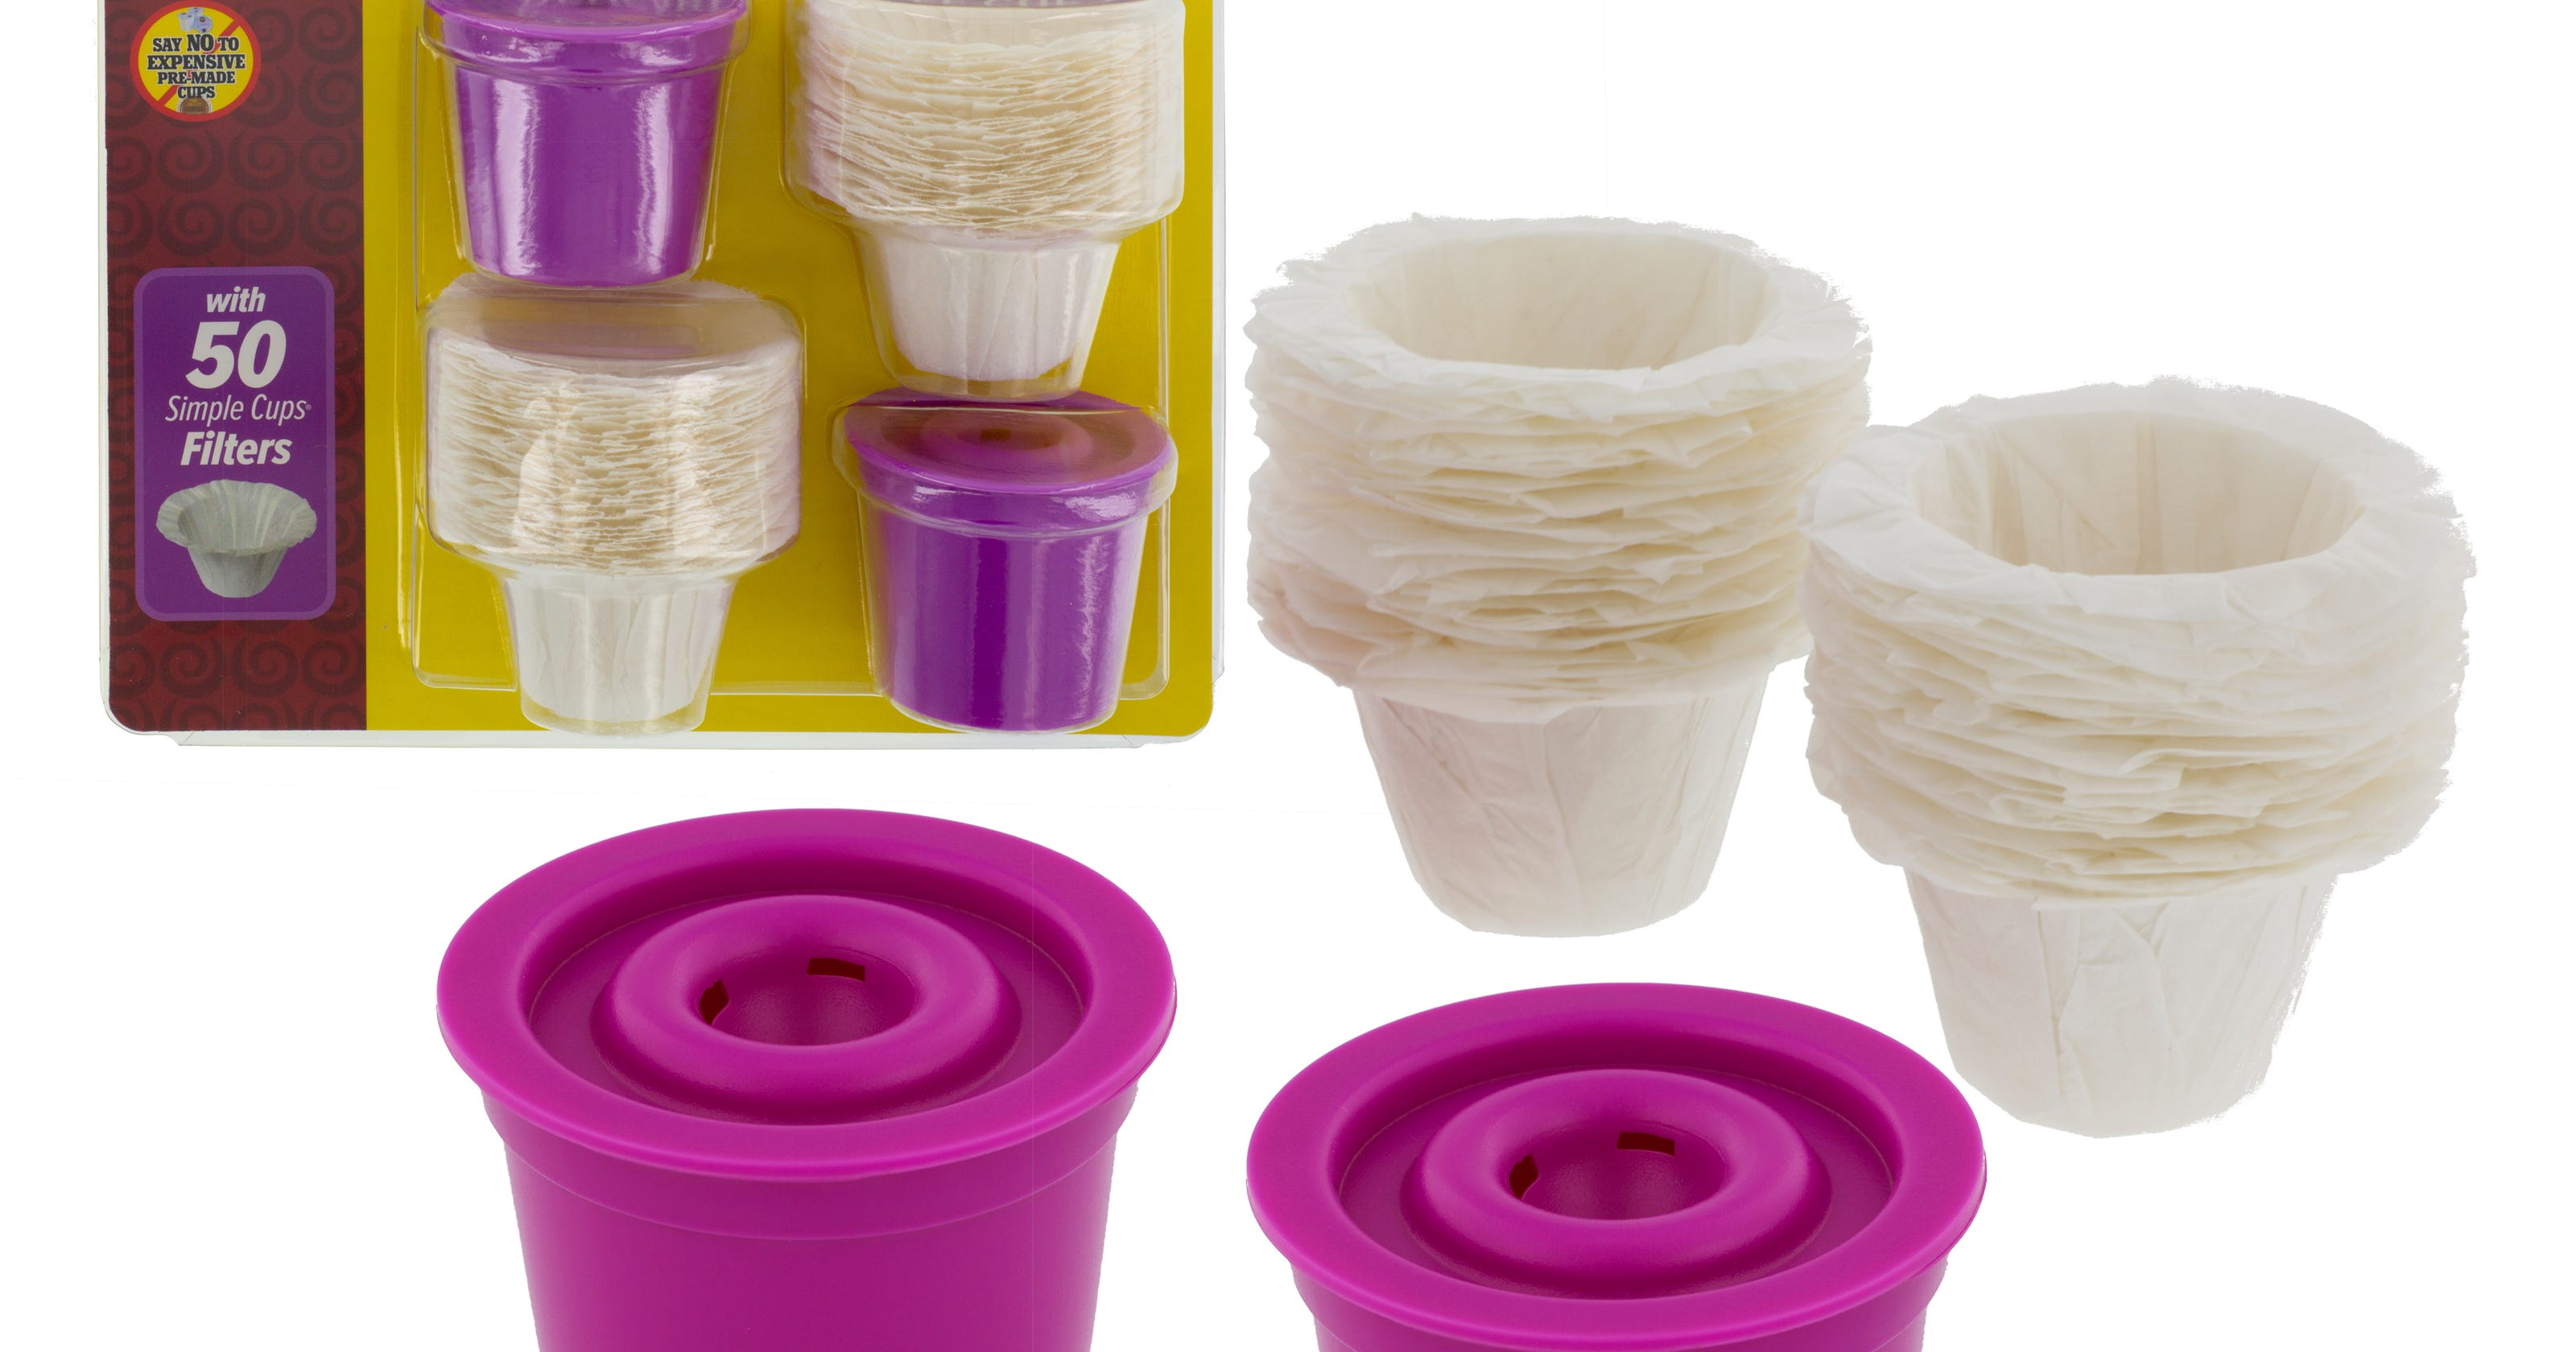 Reusable Recyclable K Cups For Your Morning Cup Of Joe